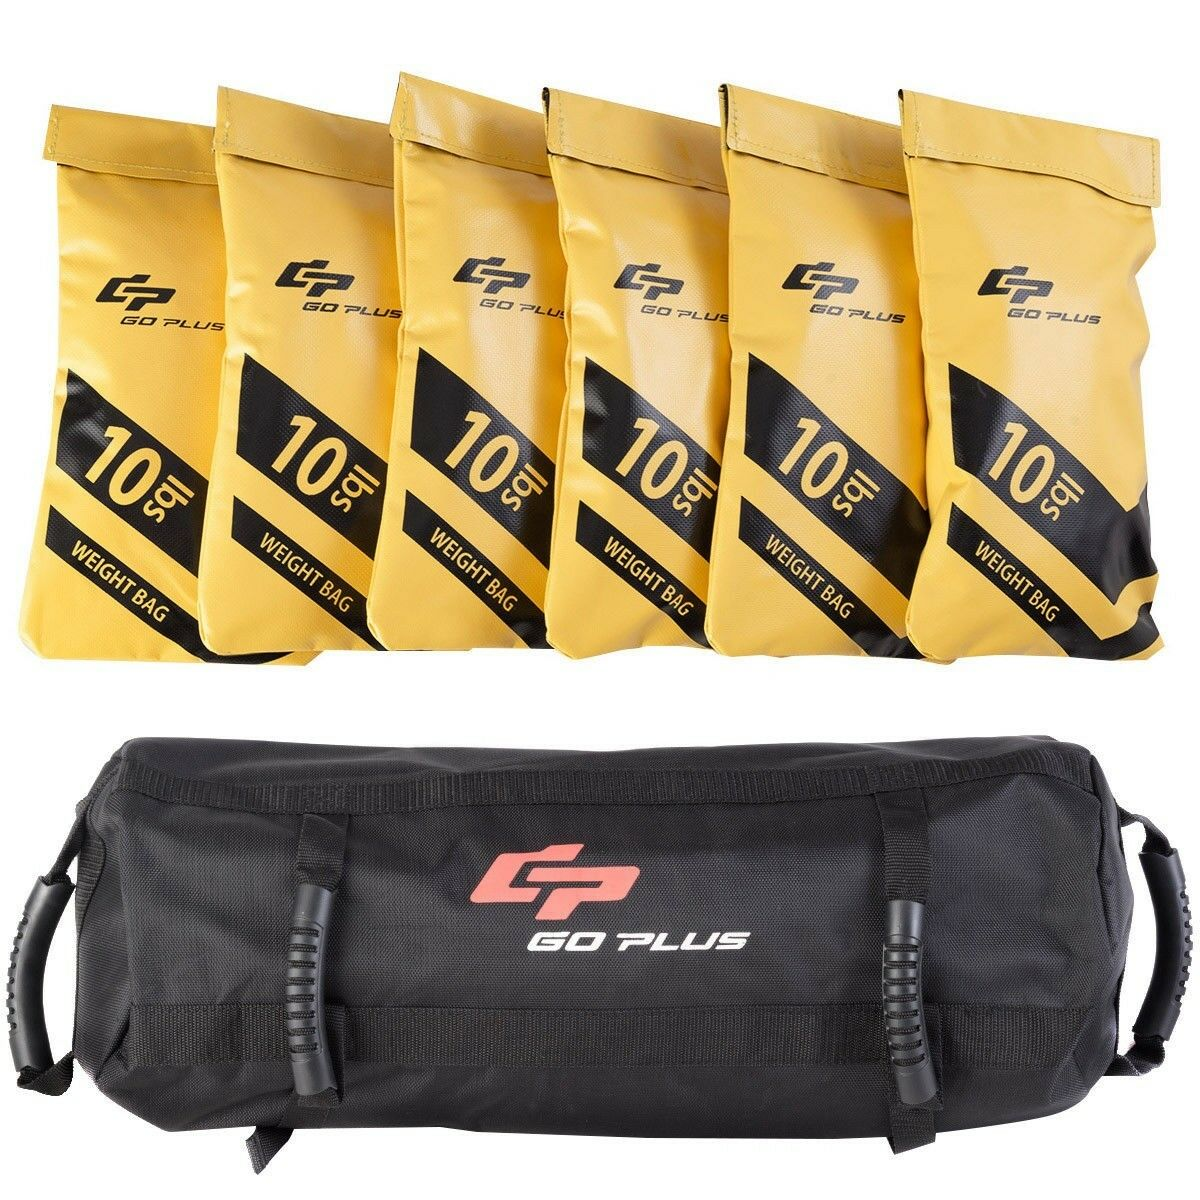 20  40 60lbs Goplus Fitness Exercise Weighted Sandbags Sport Weight Training Set  very popular